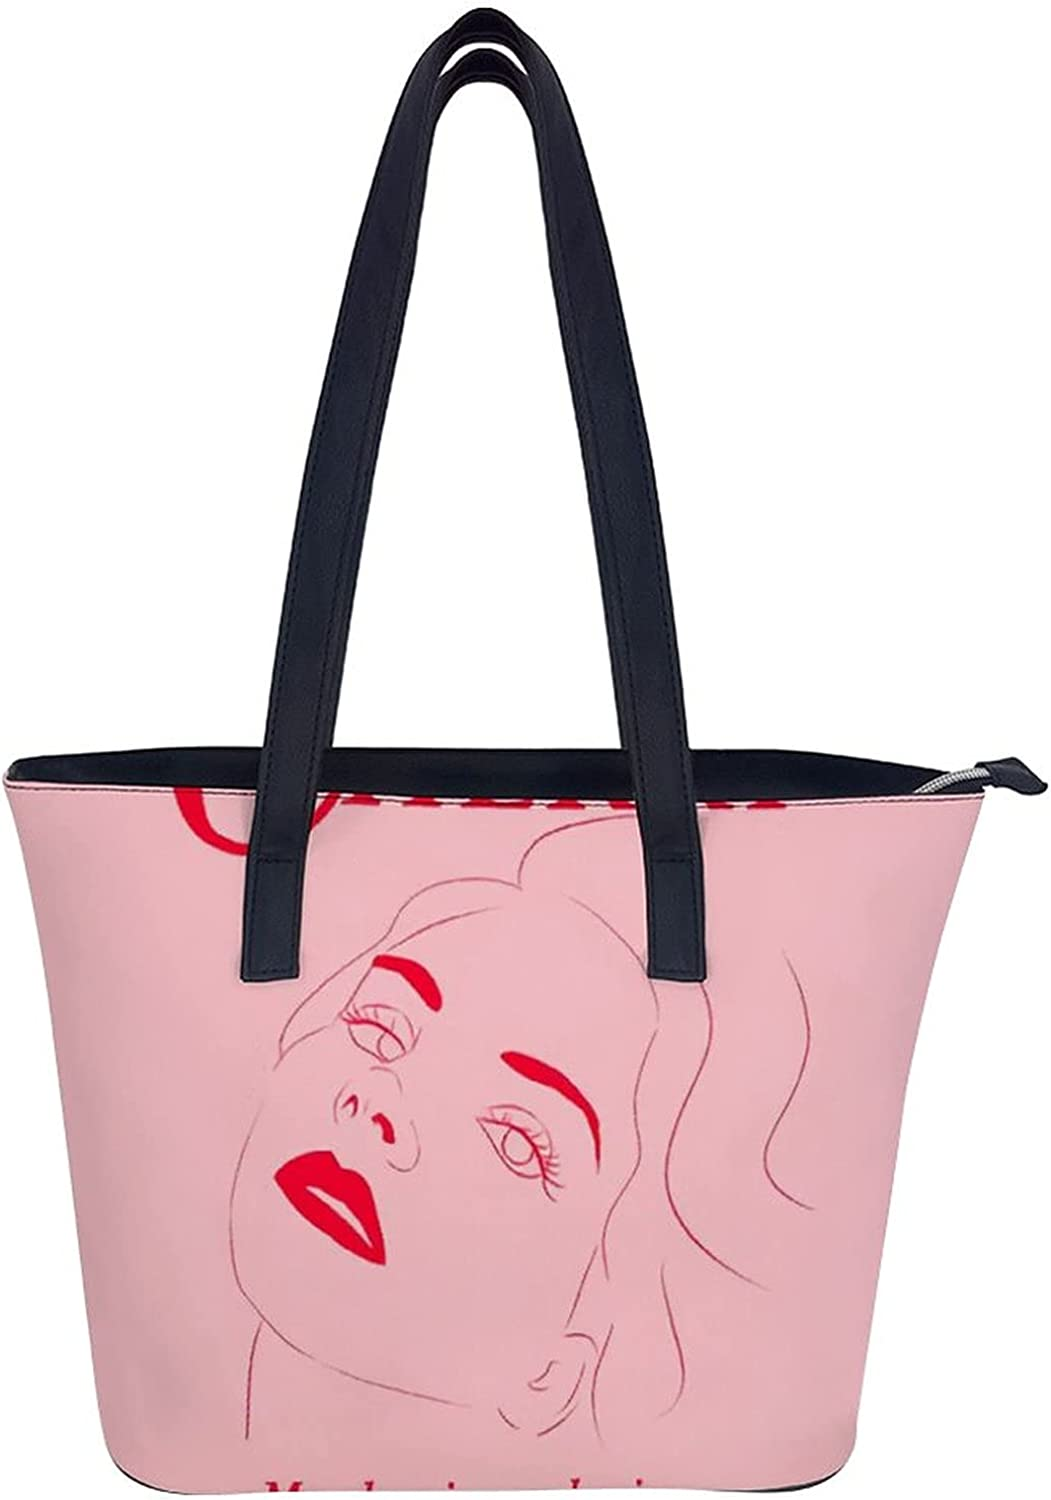 Cherry Purses and Handbags Women Tote Shoulder Top Handle Satchel Hobo Bags Fashion Washed Leather Purse